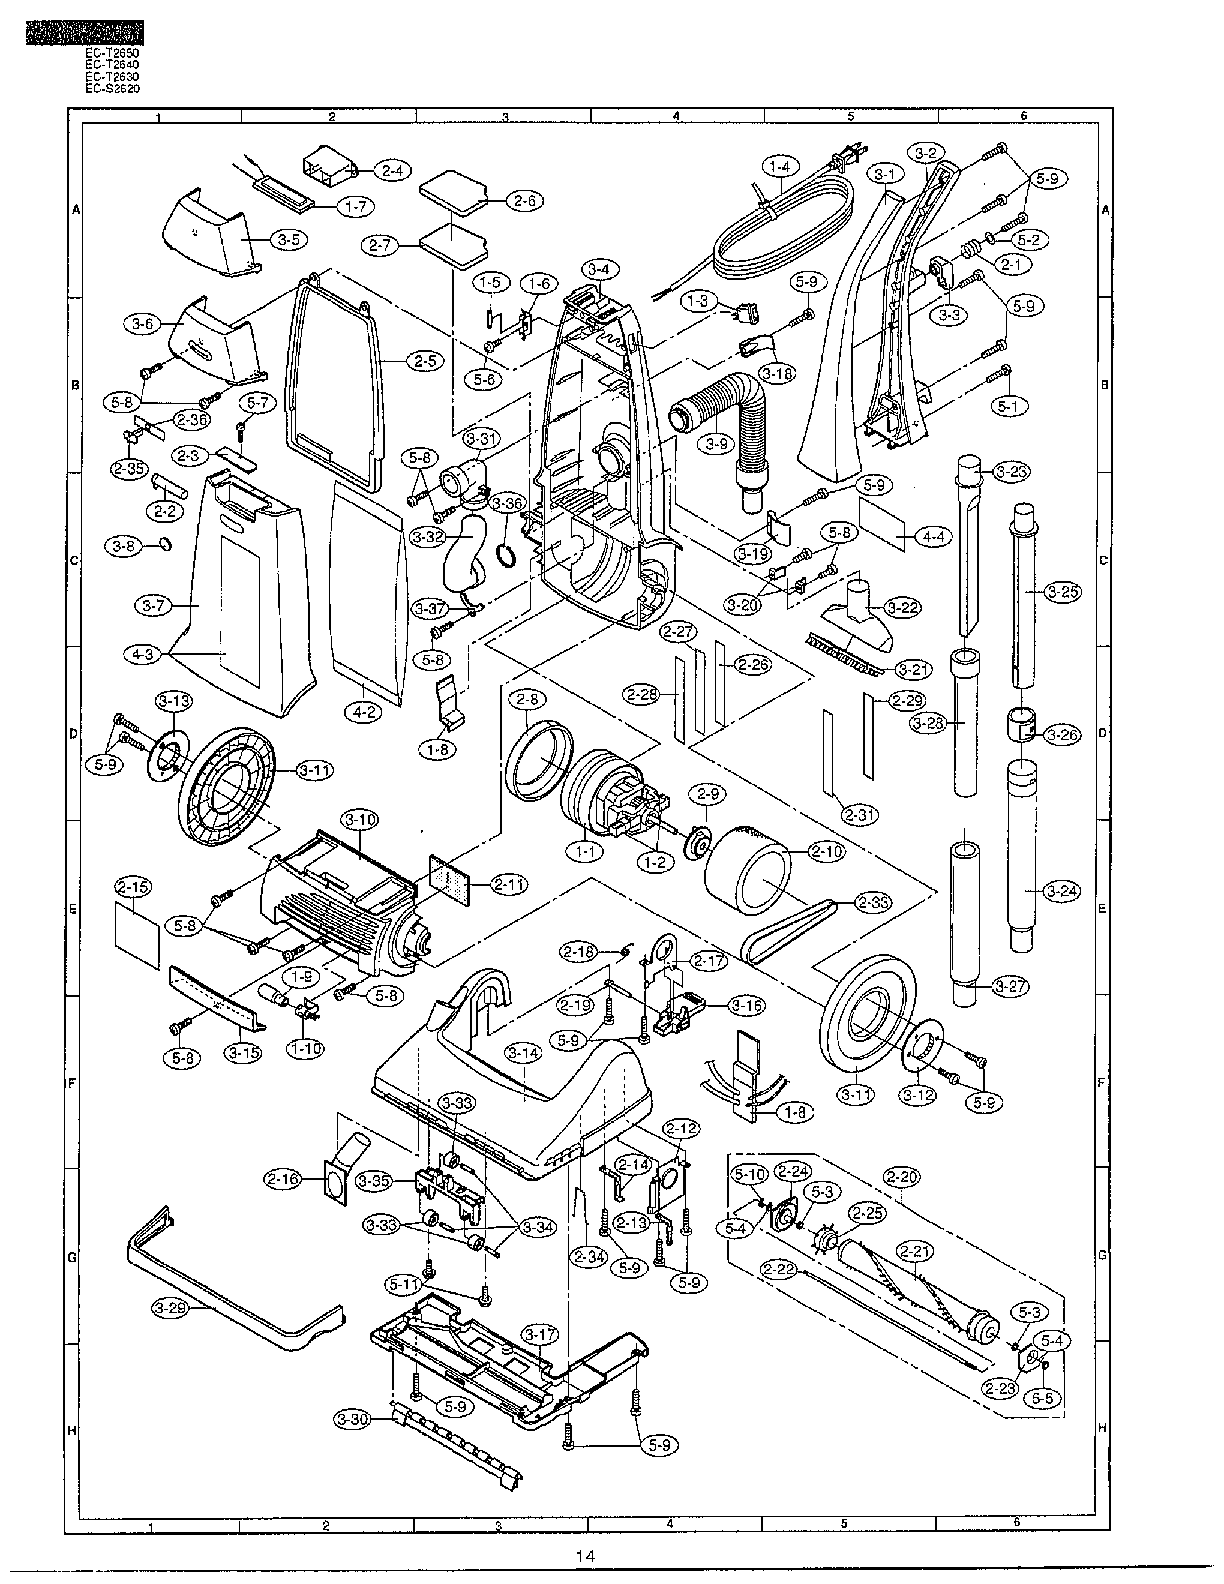 Vacuum Parts: Sharp Vacuum Parts